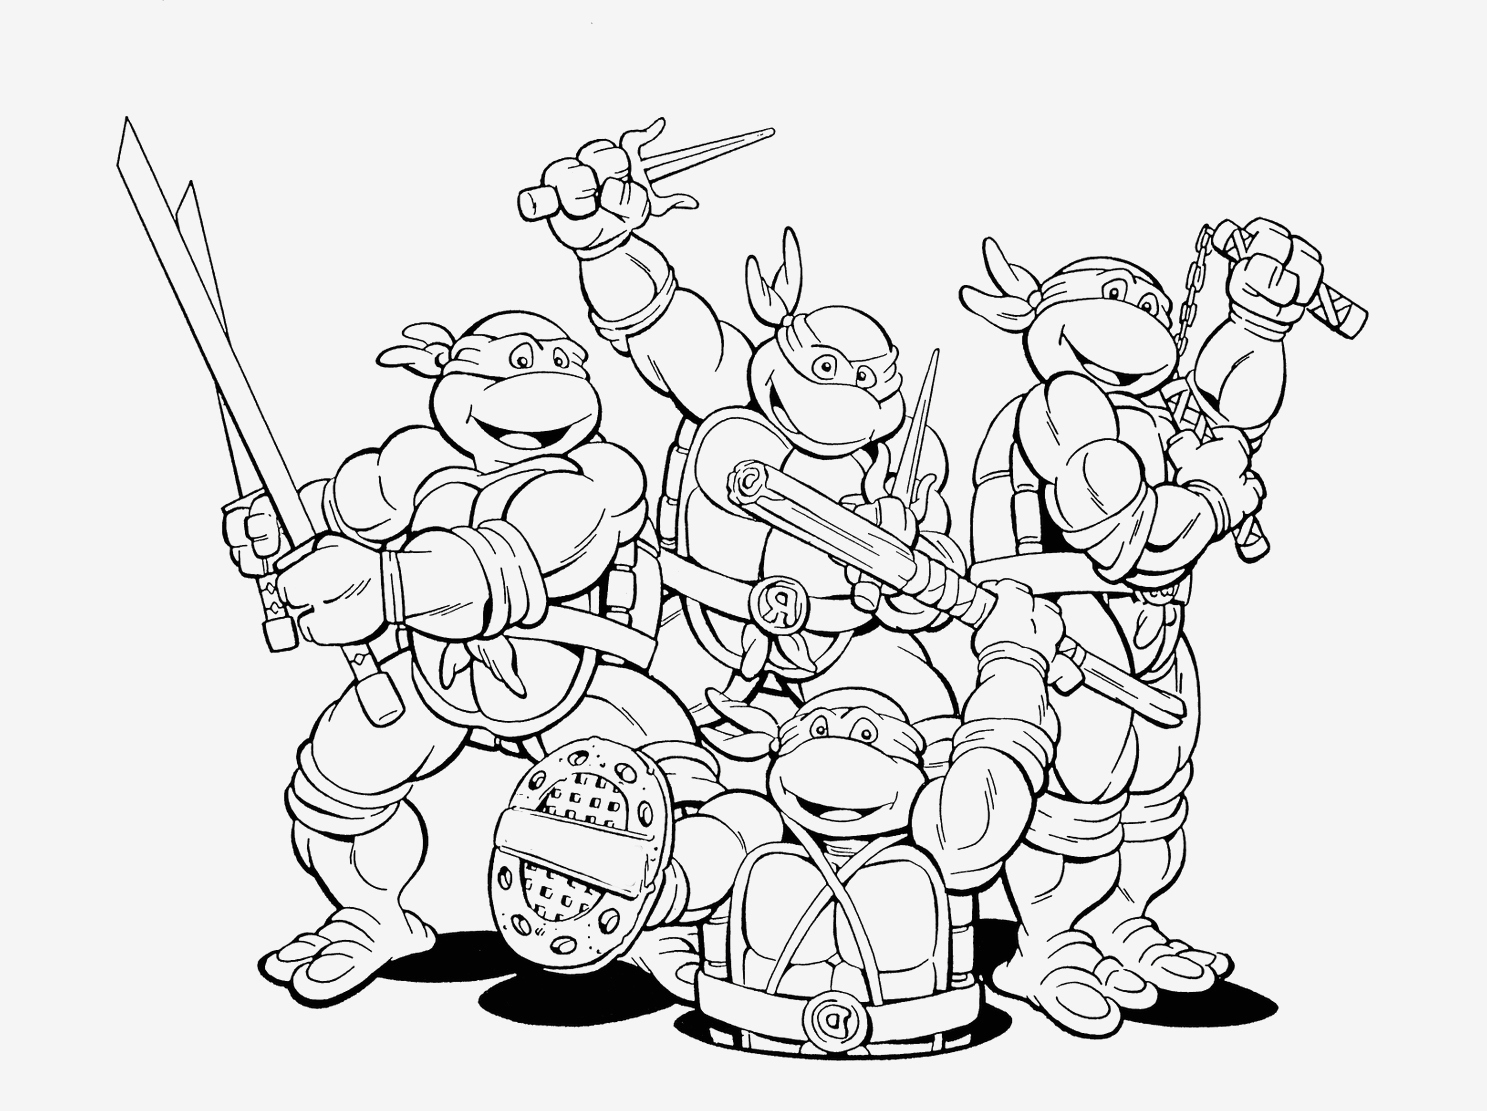 Ninja Turtles Movie Coloring Pages  to Print 15p - Free For Children